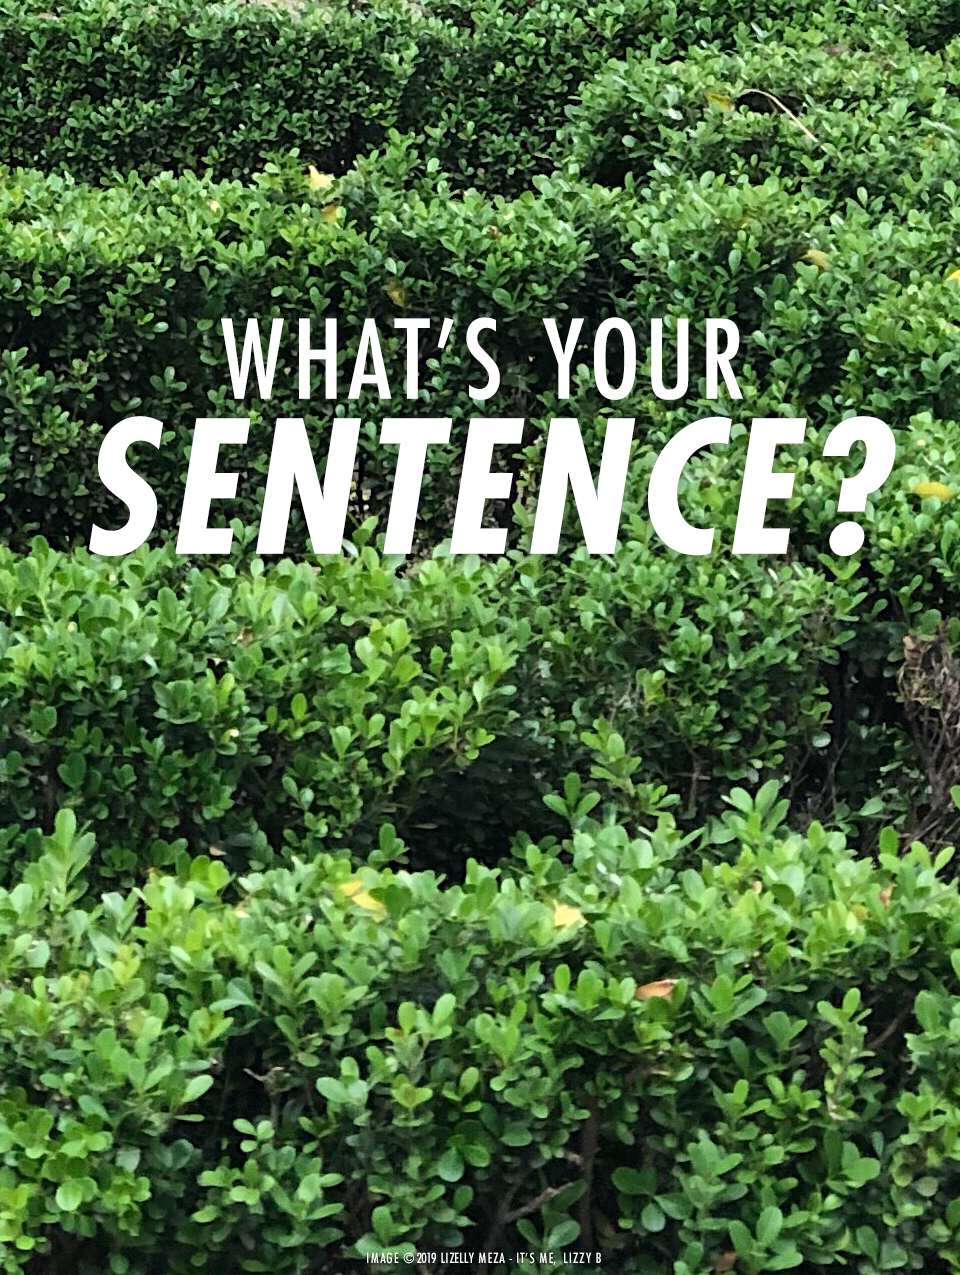 What Is Your Sentence? // It's Me, Lizzy B - Musings on Life, Business, & The Pursuit of Curiosity // Personal blog of Lizelly Meza